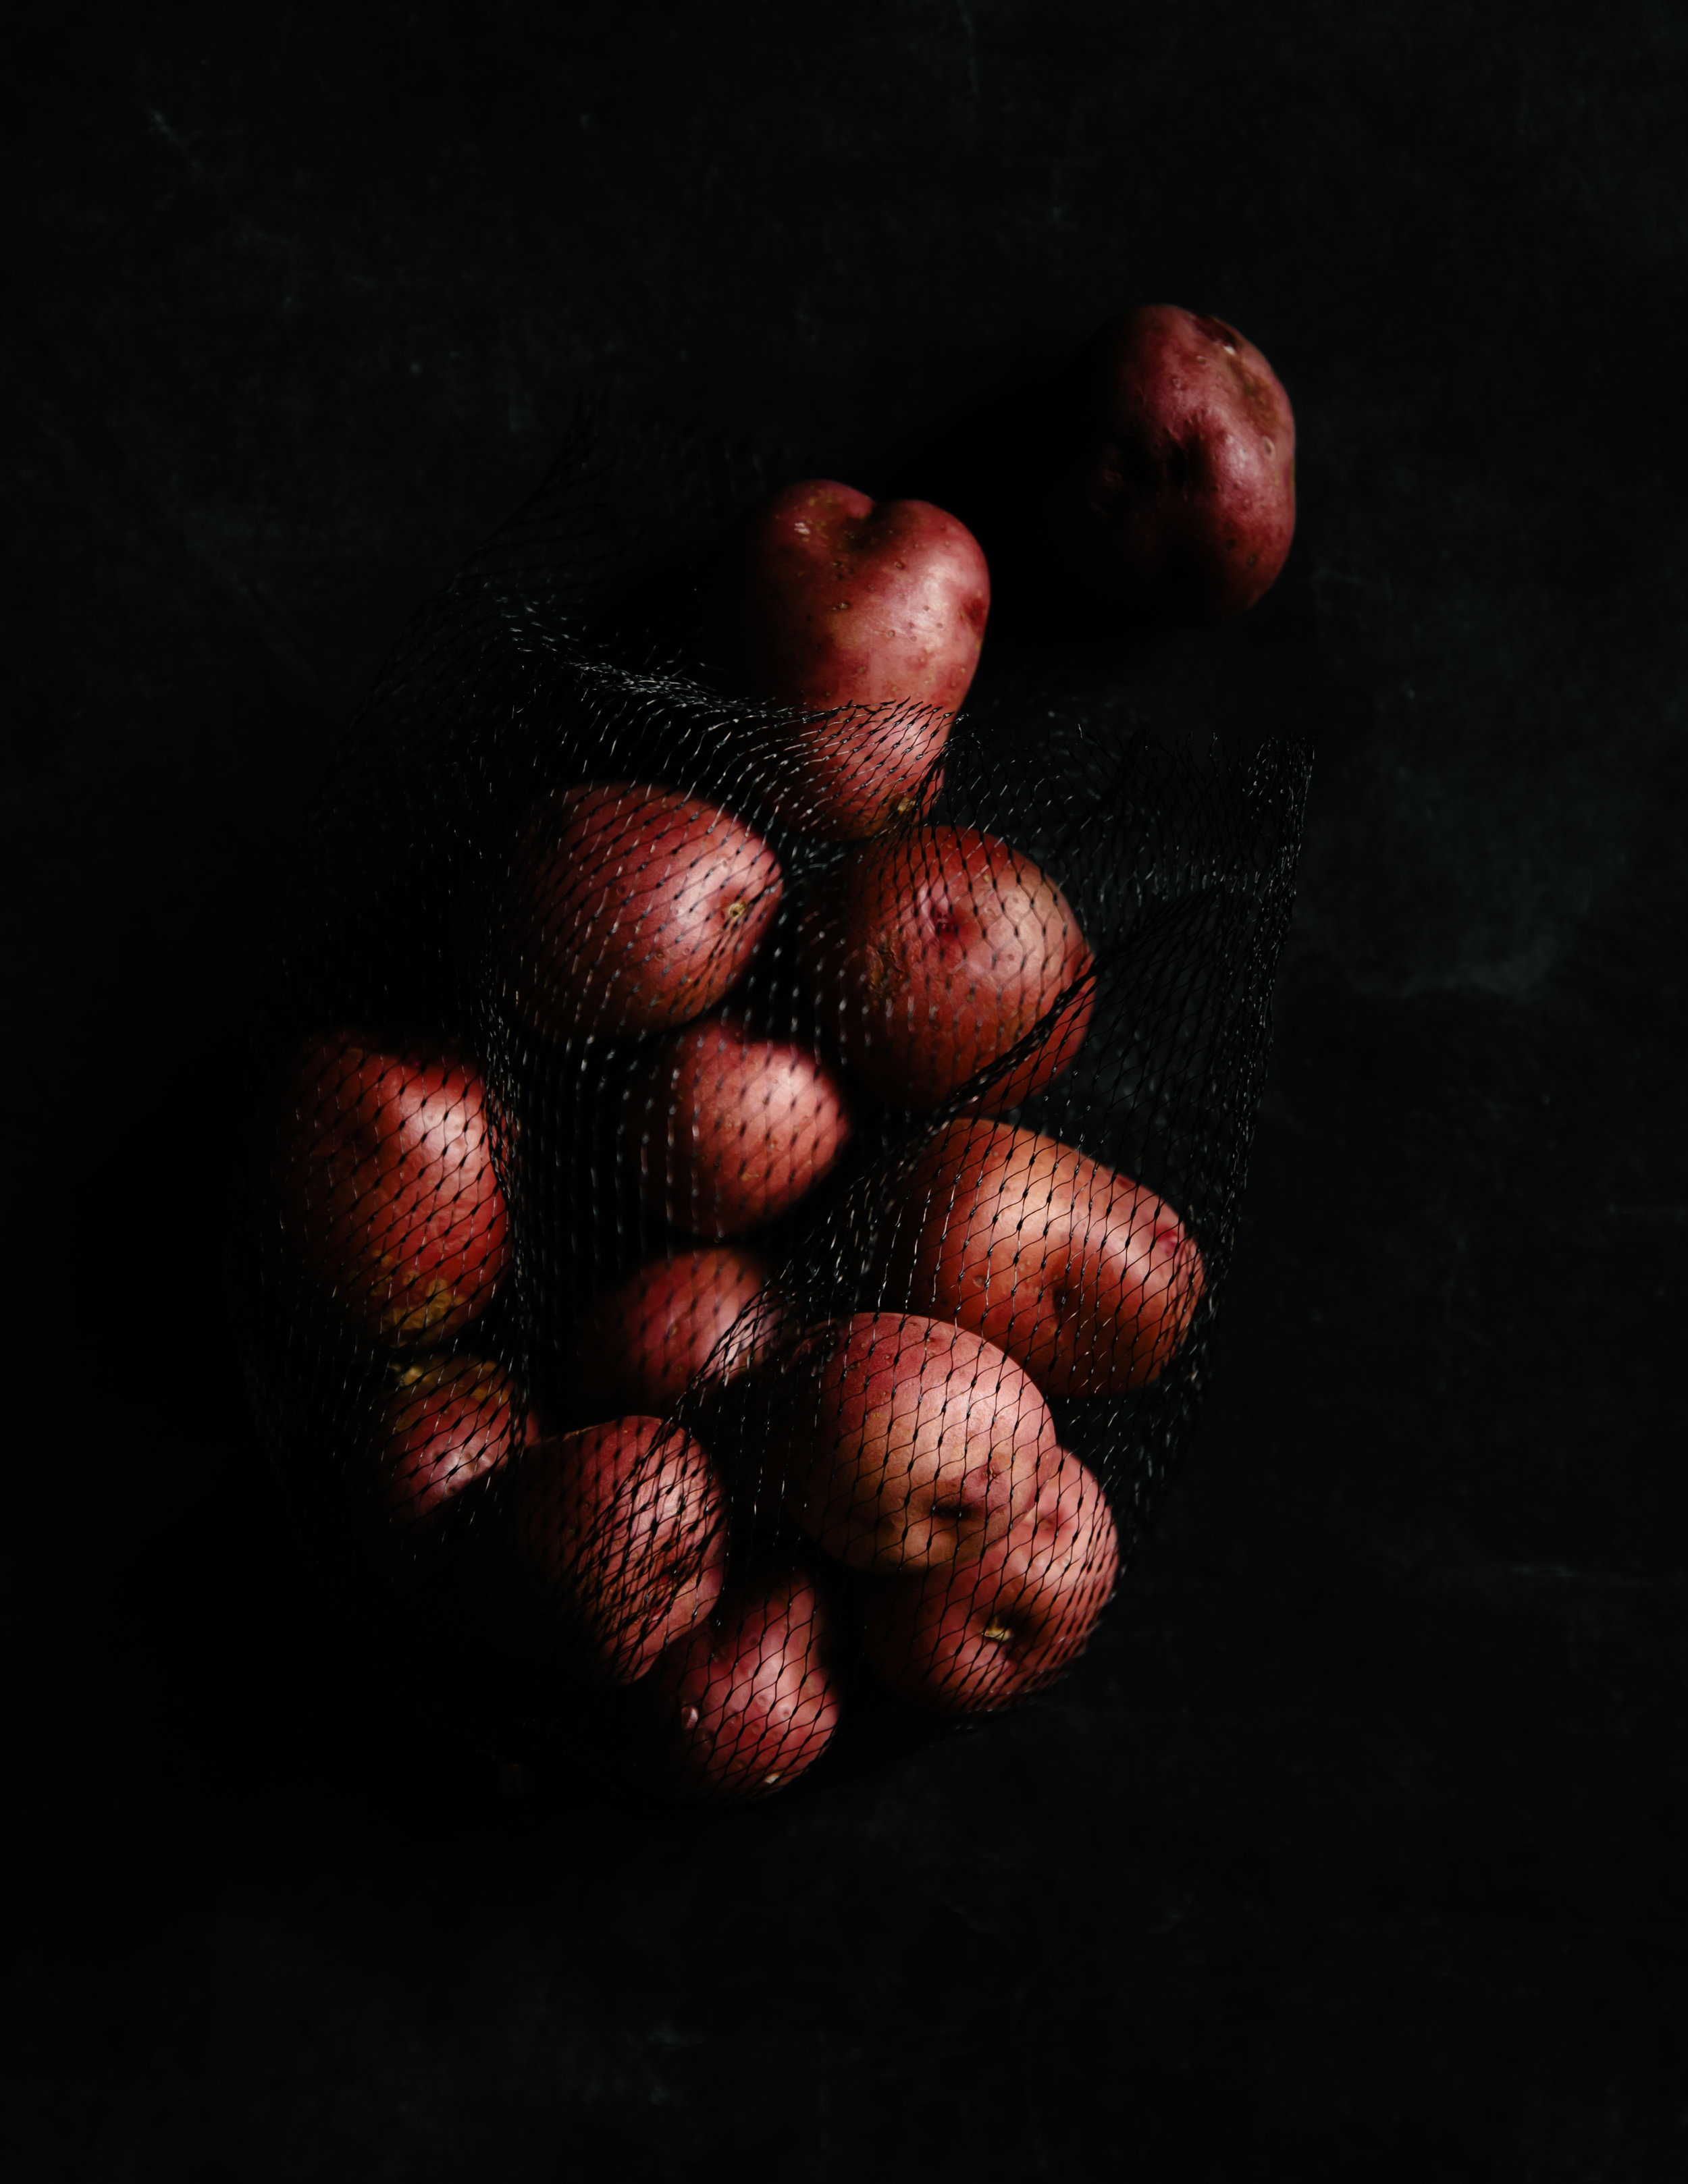 red potatoes-6052.jpg